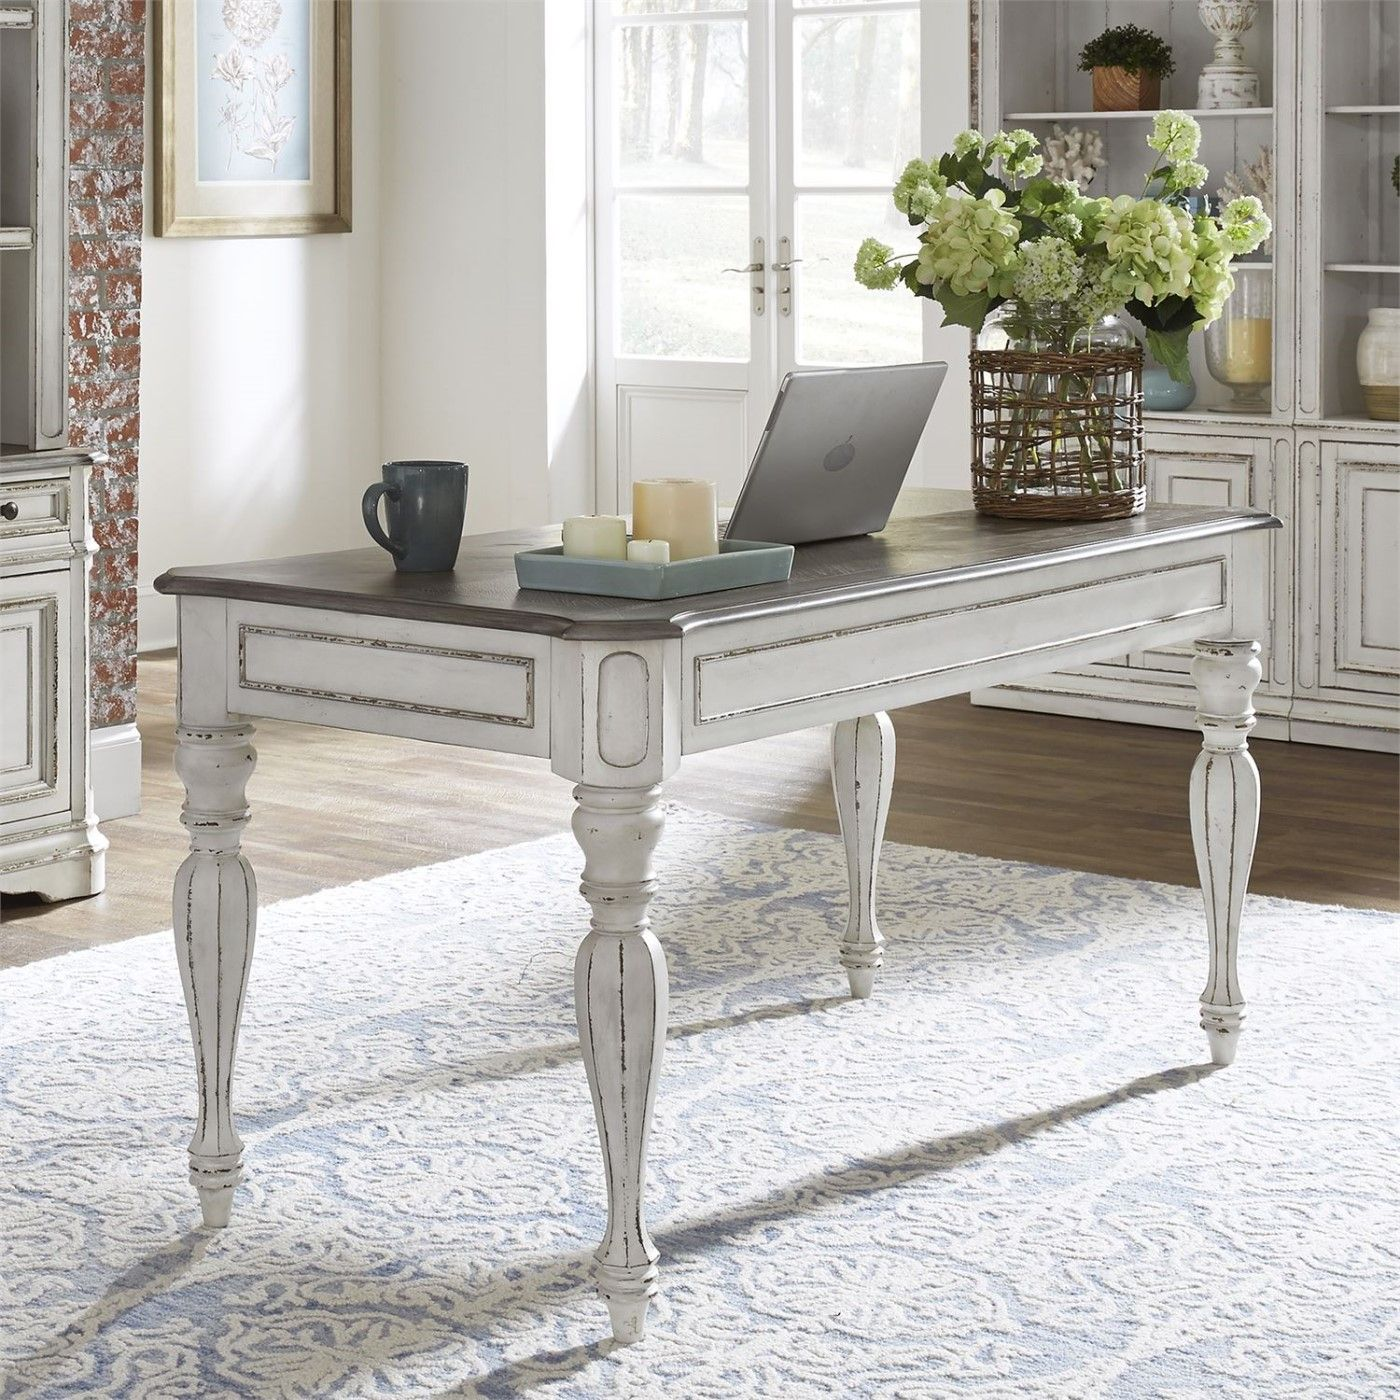 Magnolia Traditional Antique White Writing Desk with Flip ...